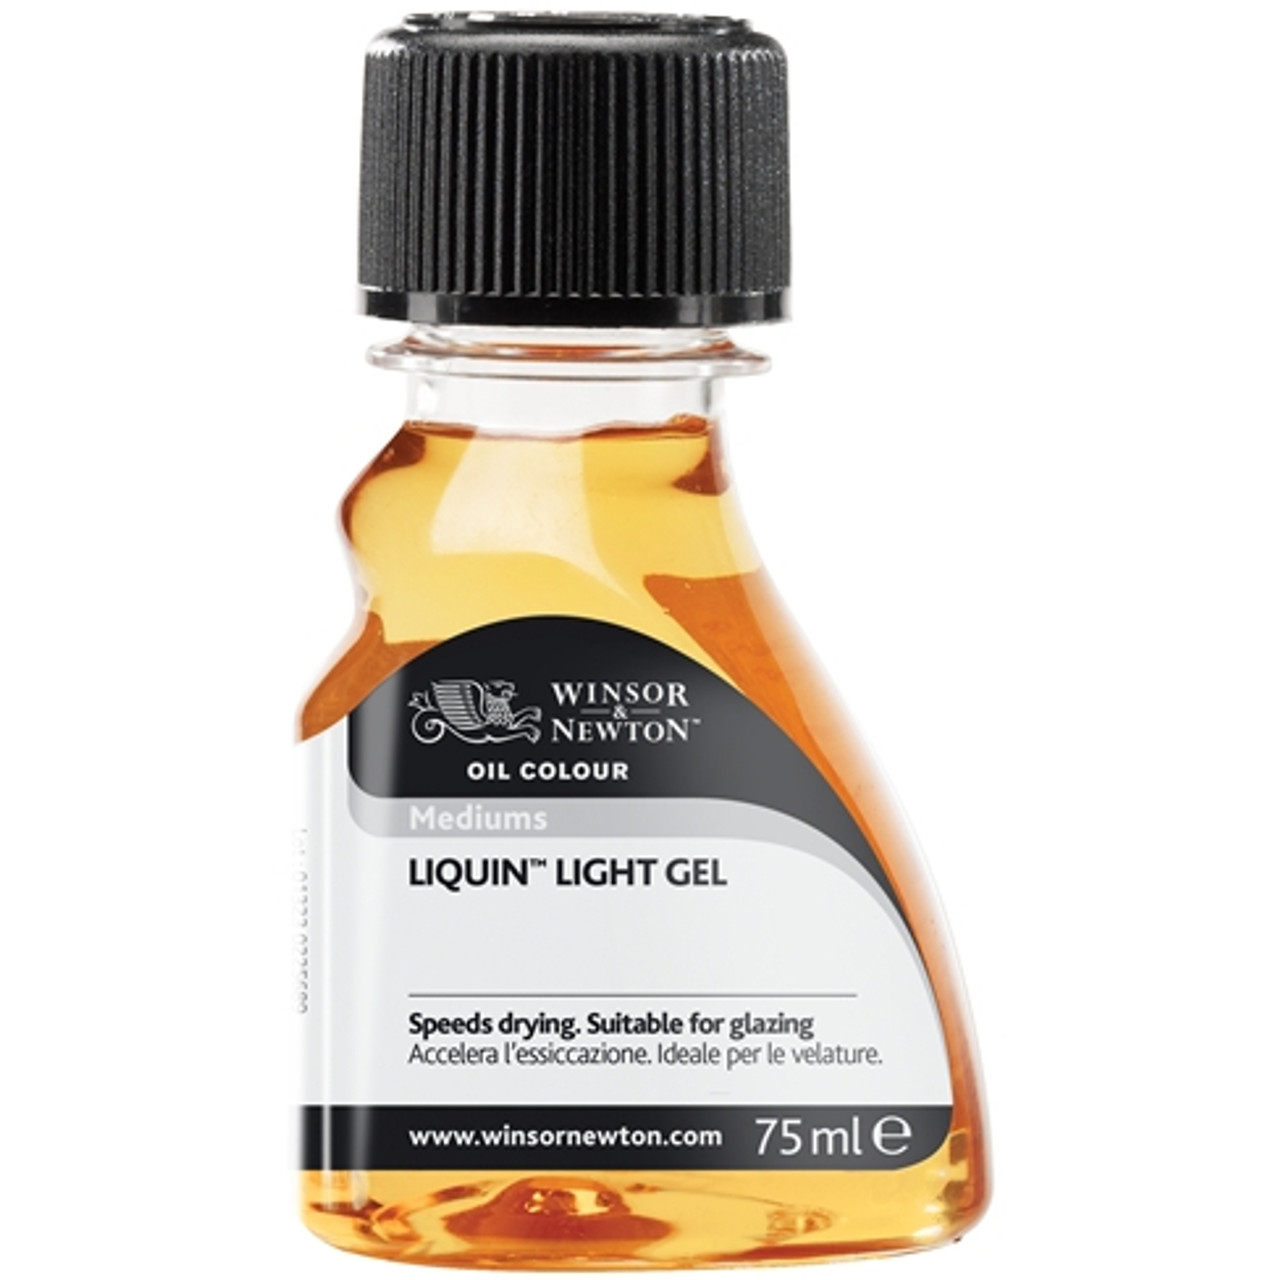 Liquin Light Gel, 75ml